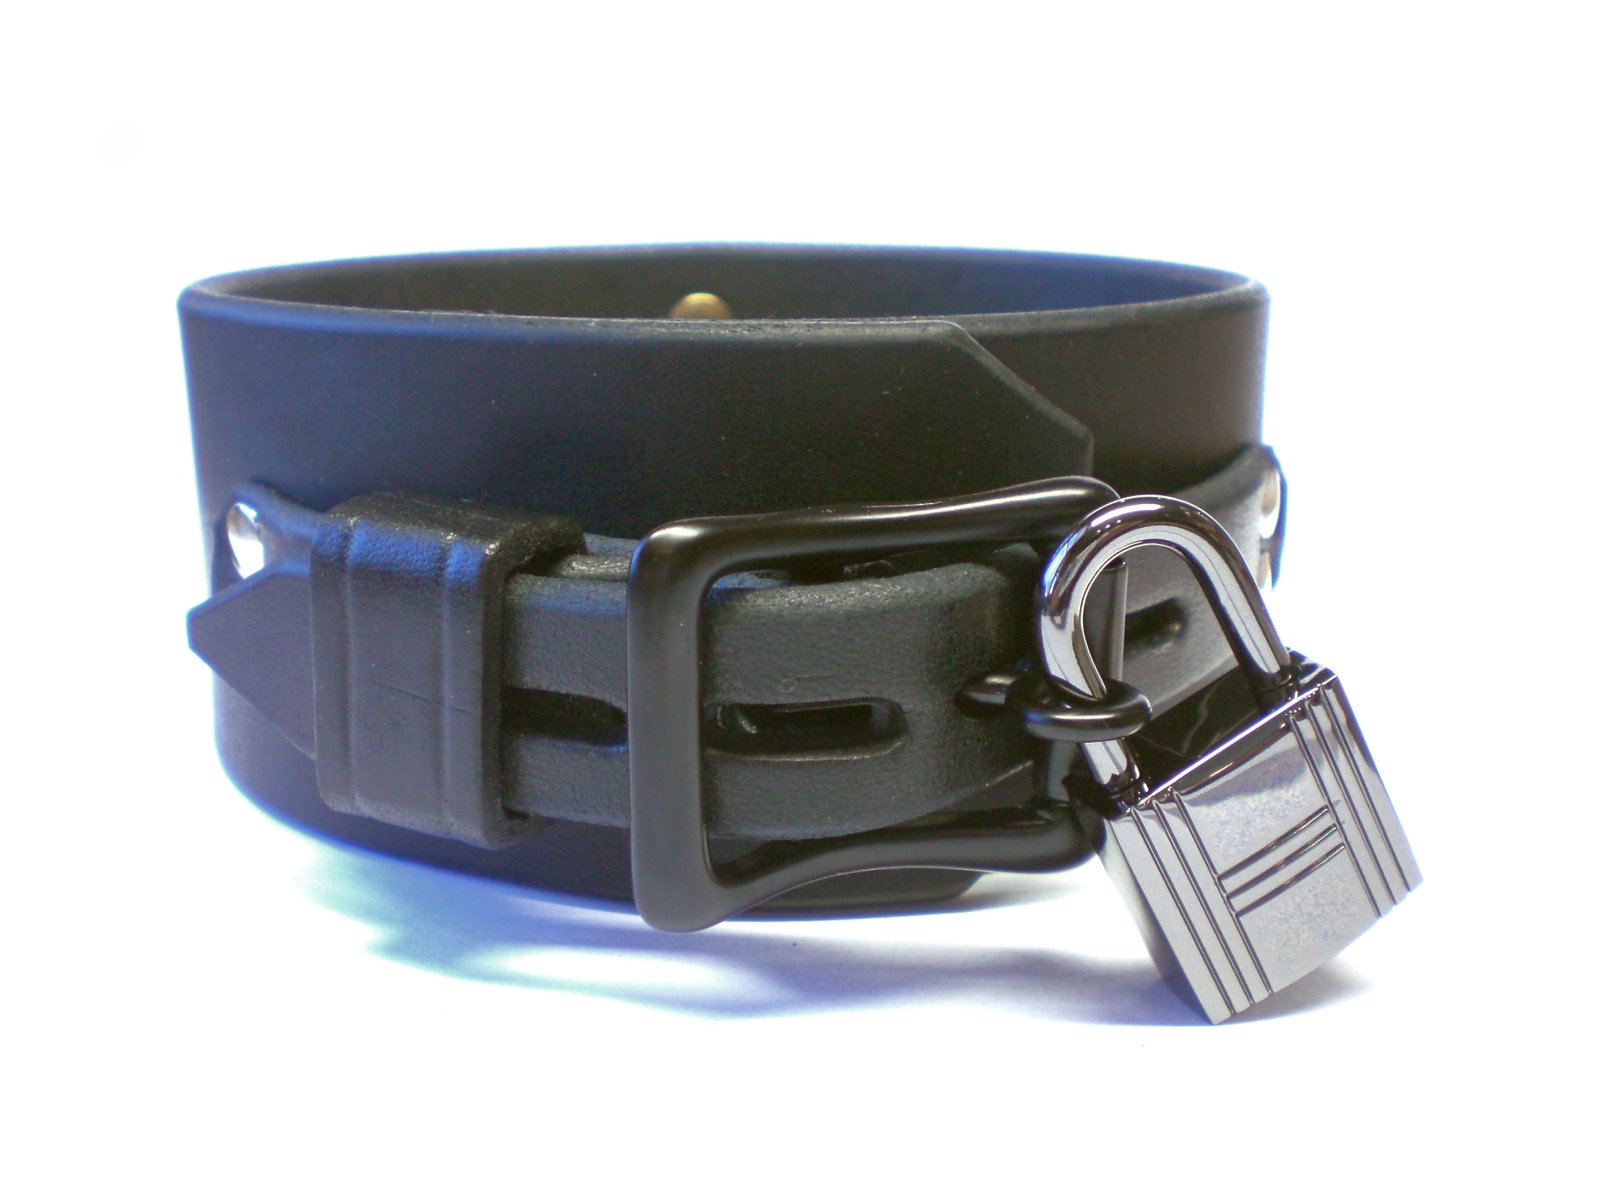 black lockable buckle - leather keeper (gun metal padlock)